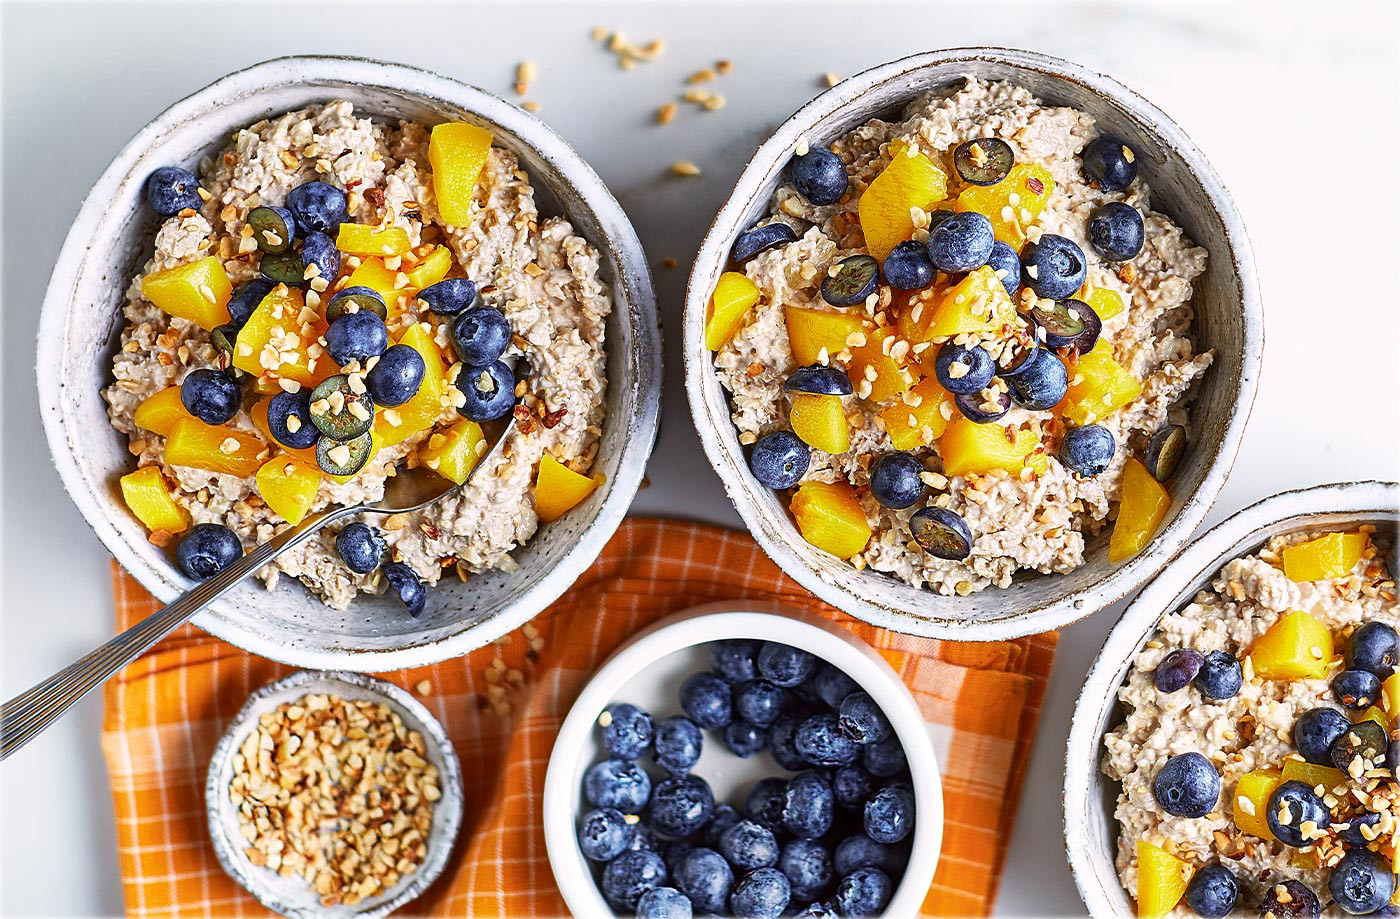 Healthy Oats Breakfast  10 healthy breakfast ideas